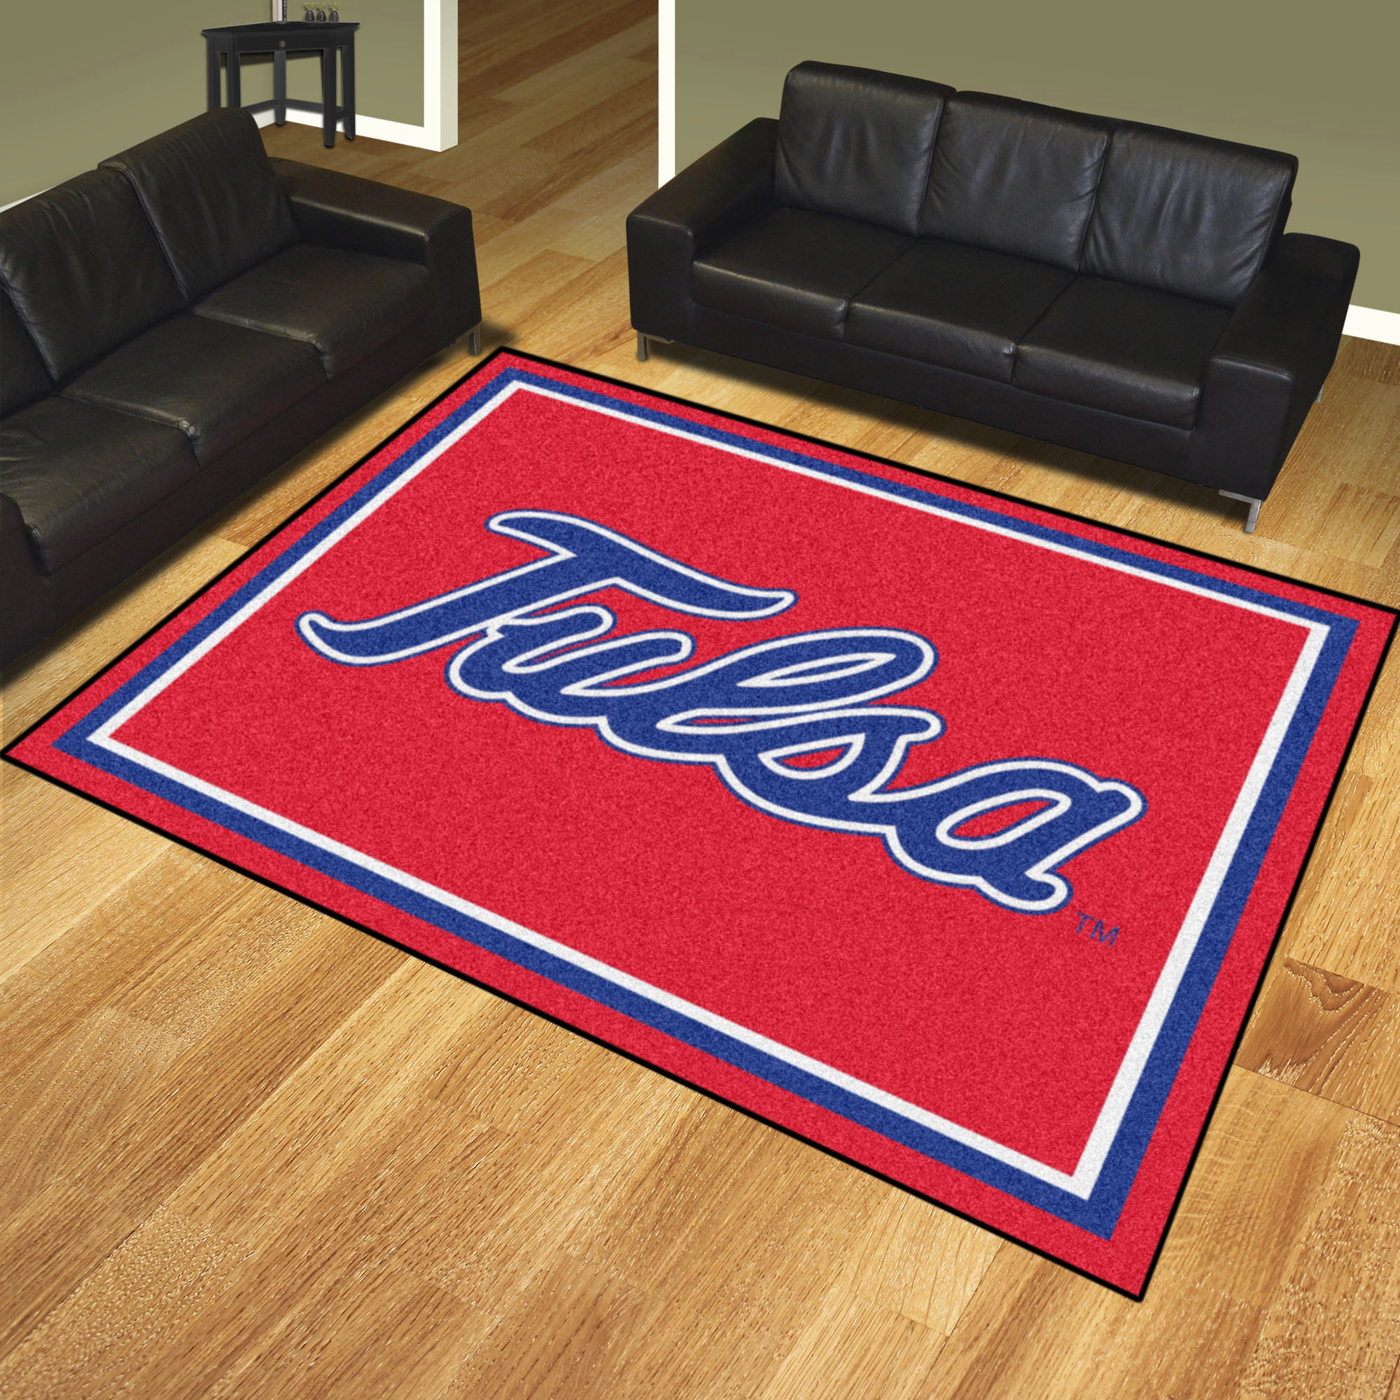 Area Rugs Tulsa Smileydot Us